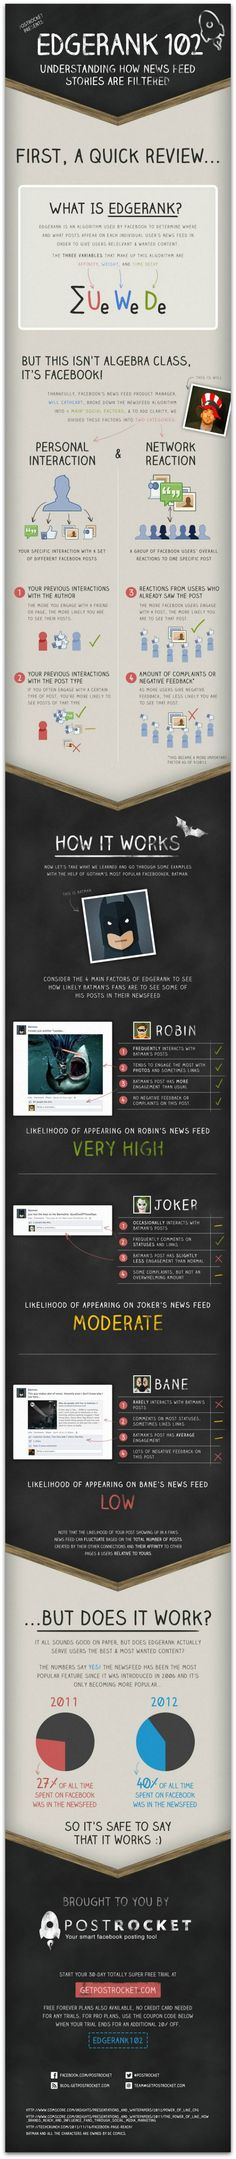 What has worked best for your Facebook page? Does it match up with the info in this Infographic: How Facebooks EdgeRank works ?